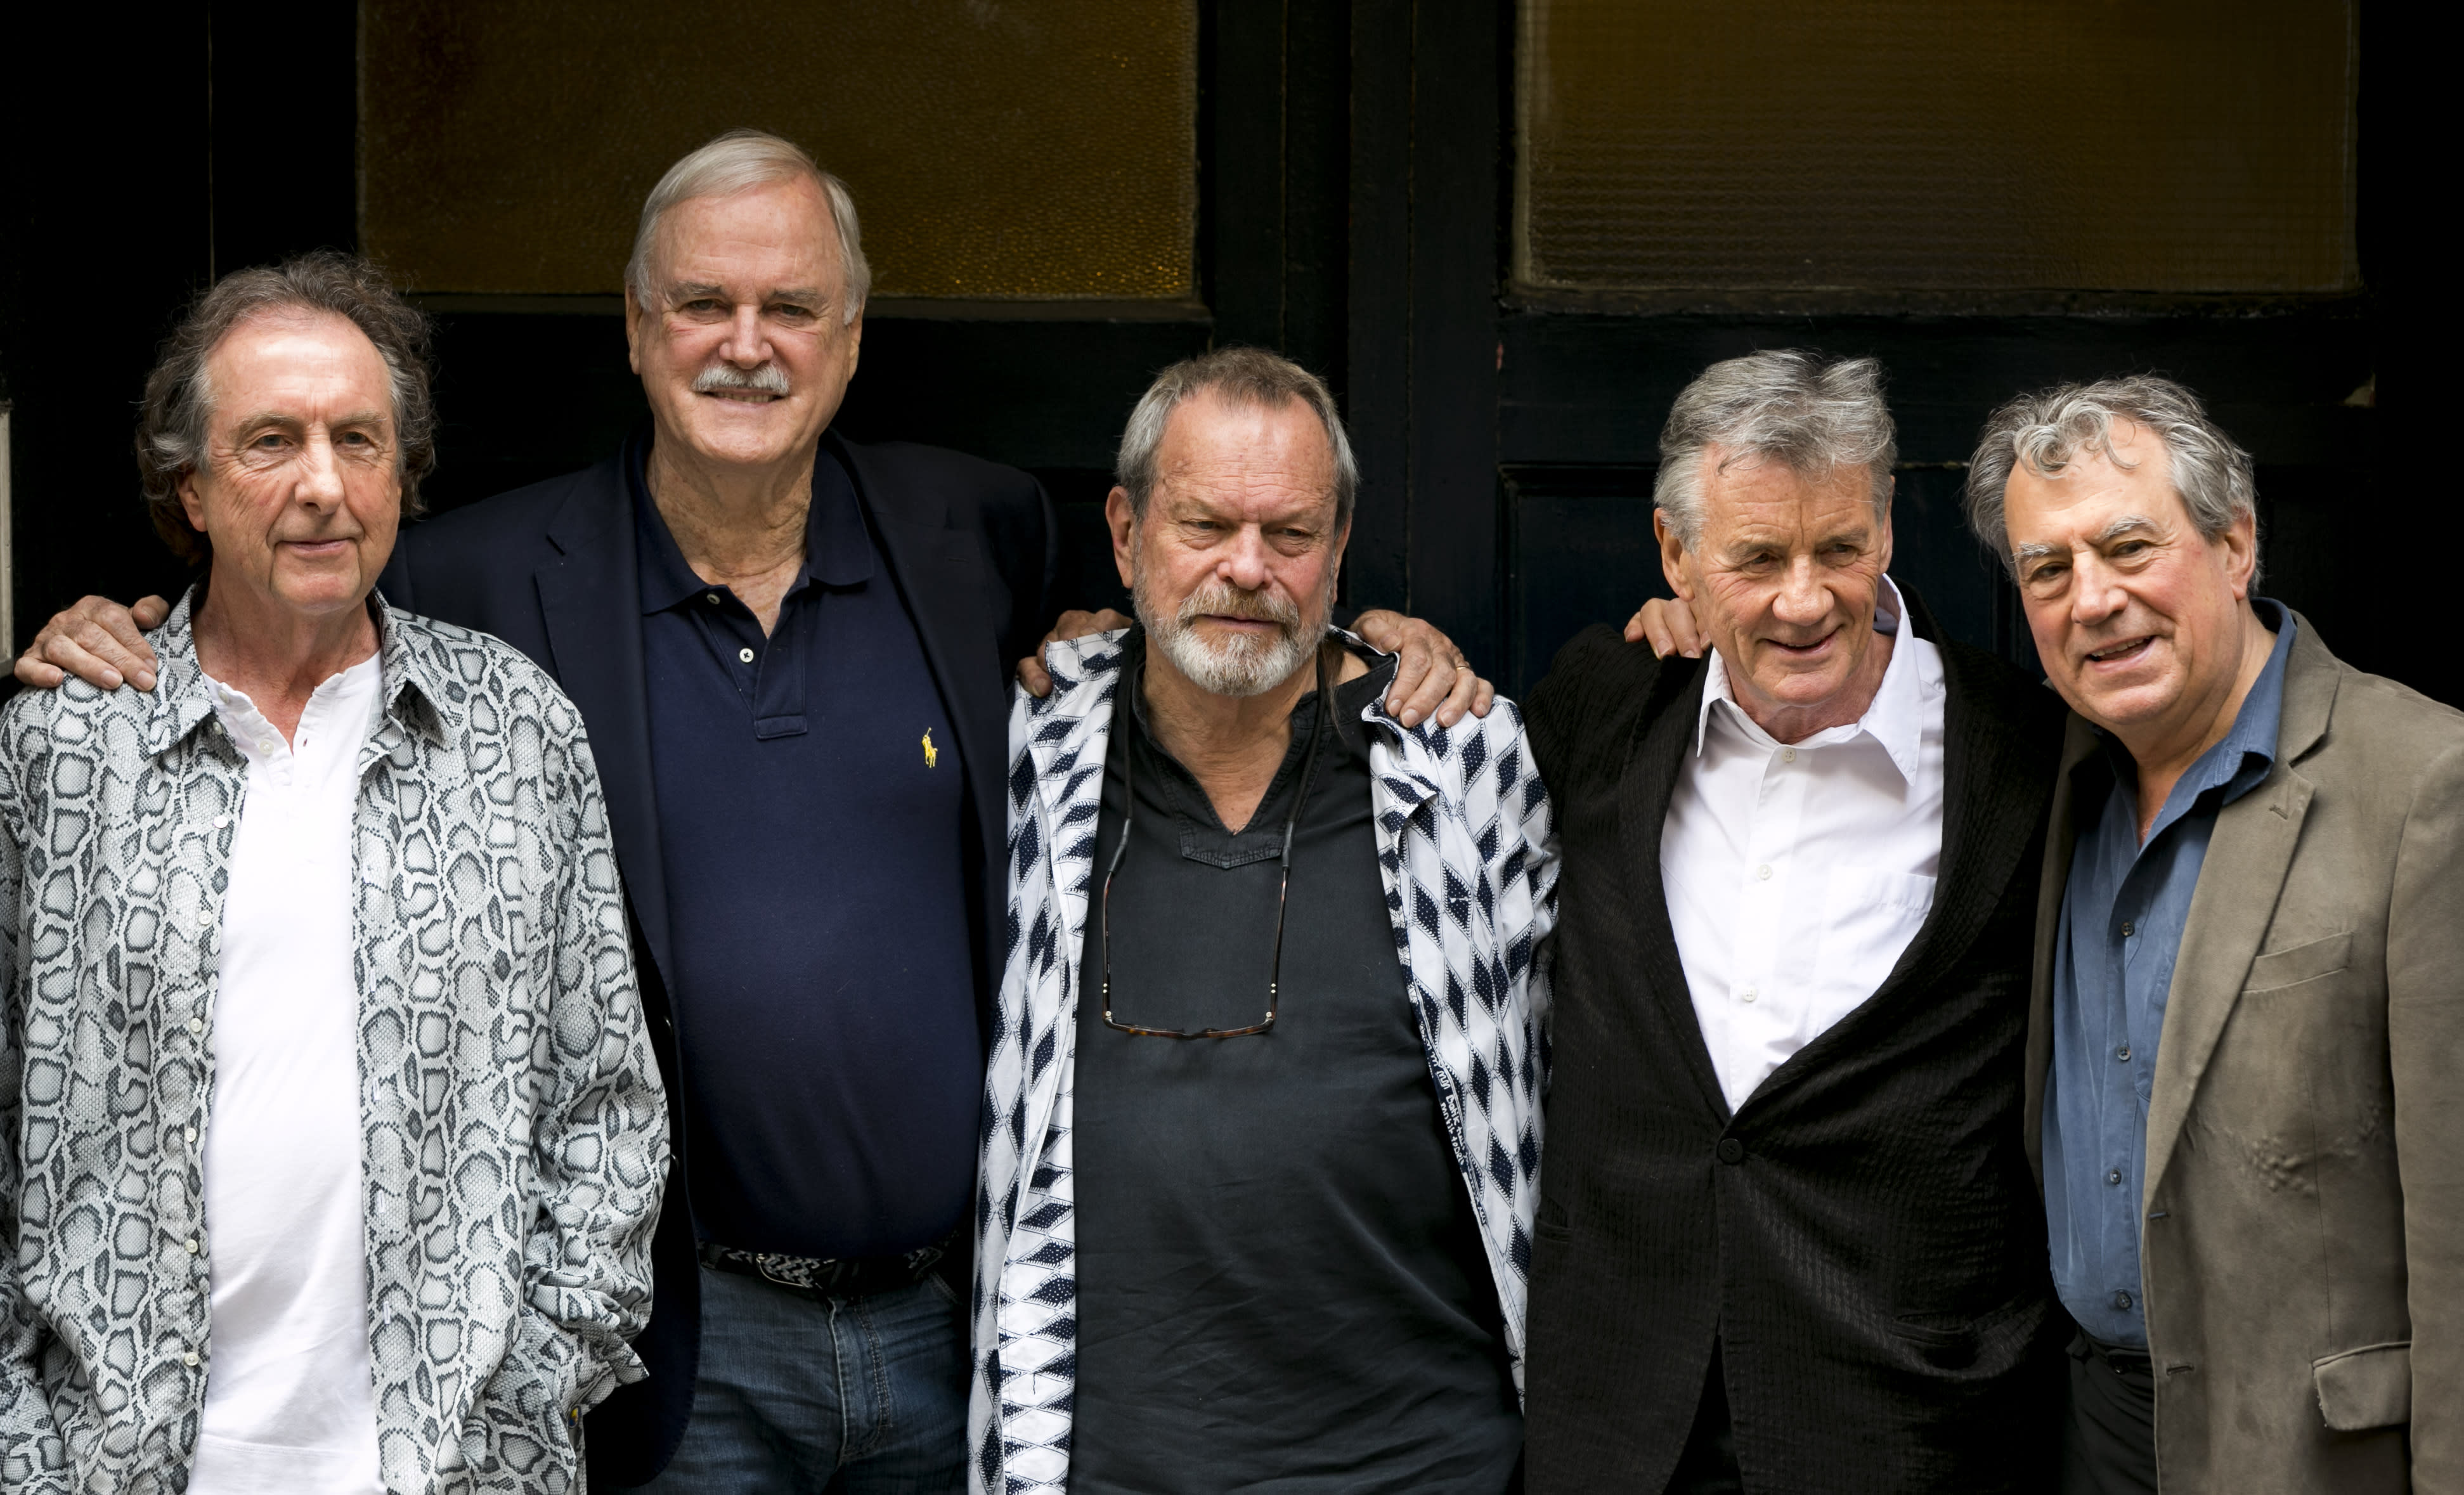 Seriously silly, Monty Python reunites for a weekend tribute